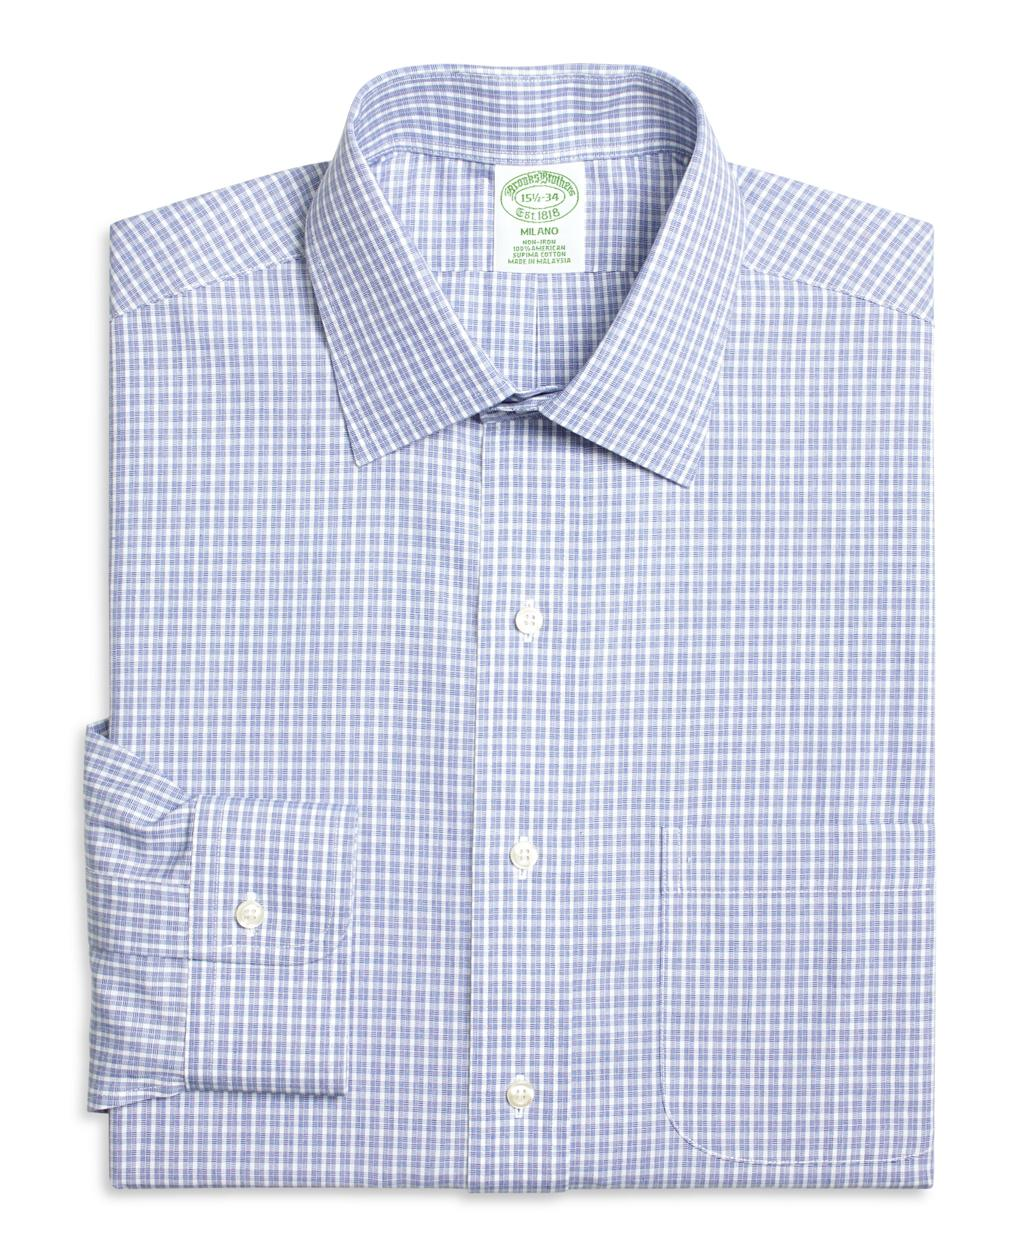 Brooks brothers non iron milano fit parquet check dress for Brooks brothers dress shirt fit